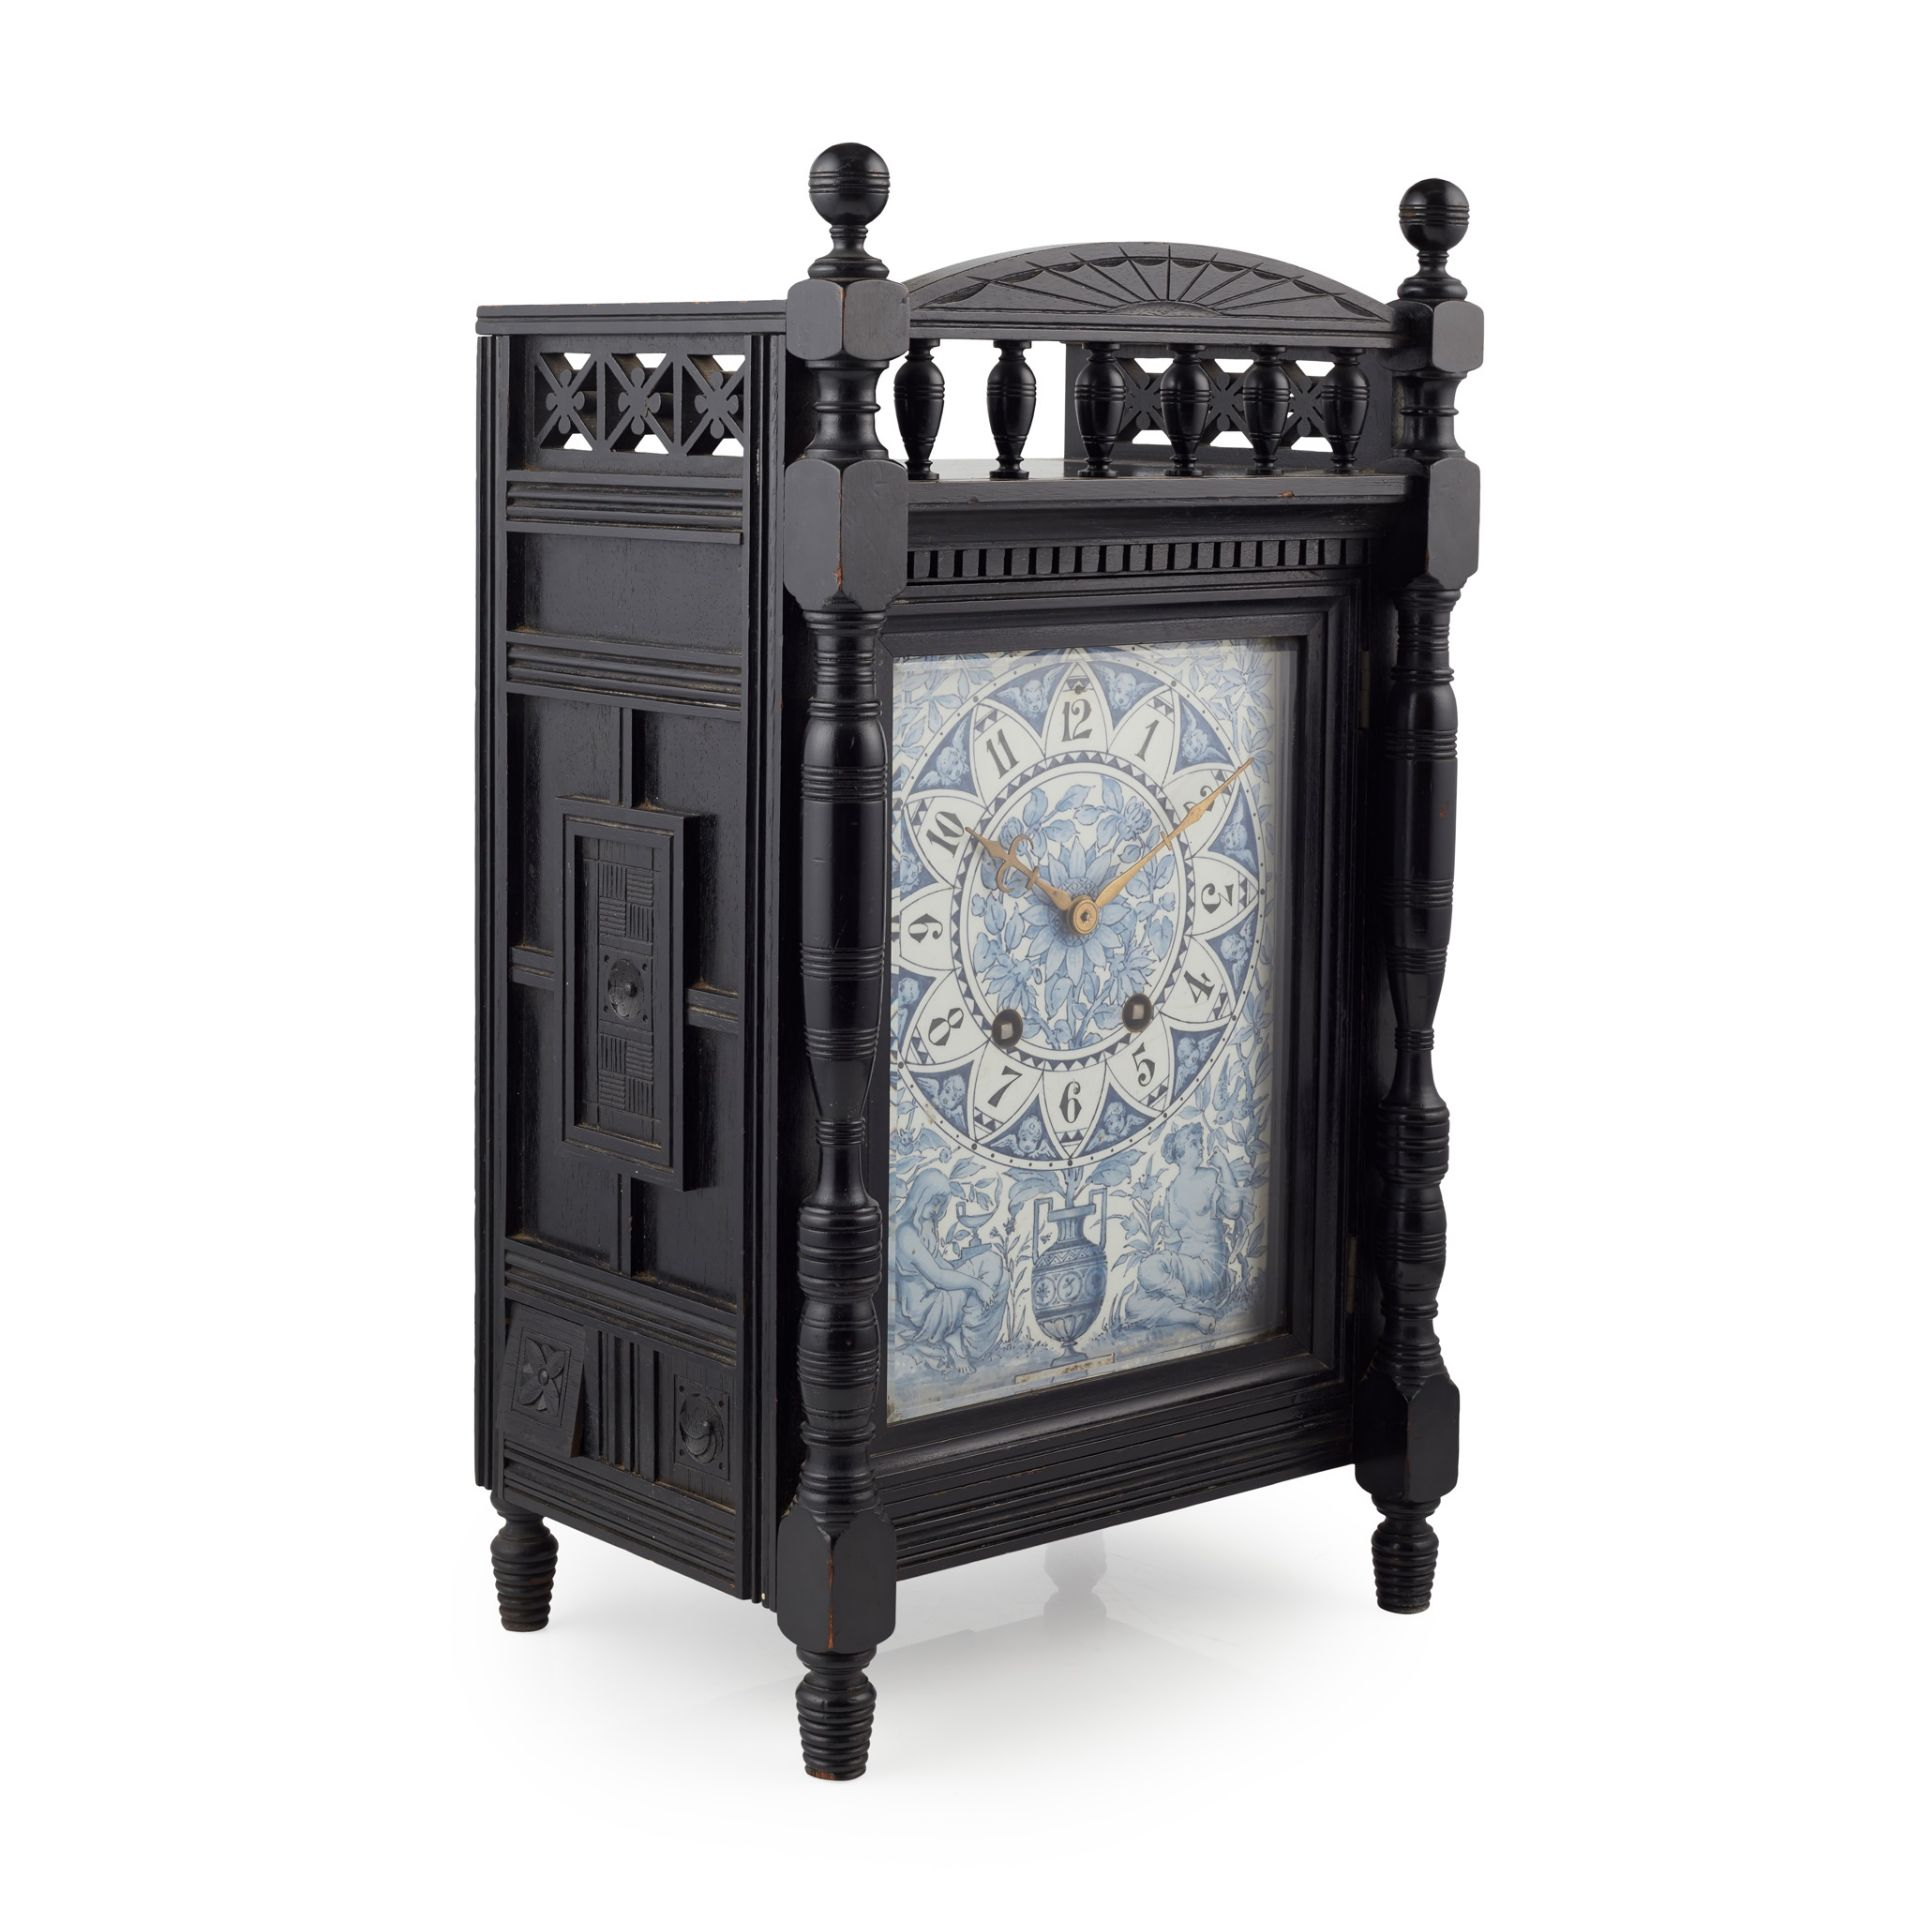 ATTRIBUTED TO LEWIS FOREMAN DAY FOR HOWELL, JAMES & CO., LONDON AESTHETIC MOVEMENT MANTEL CLOCK,